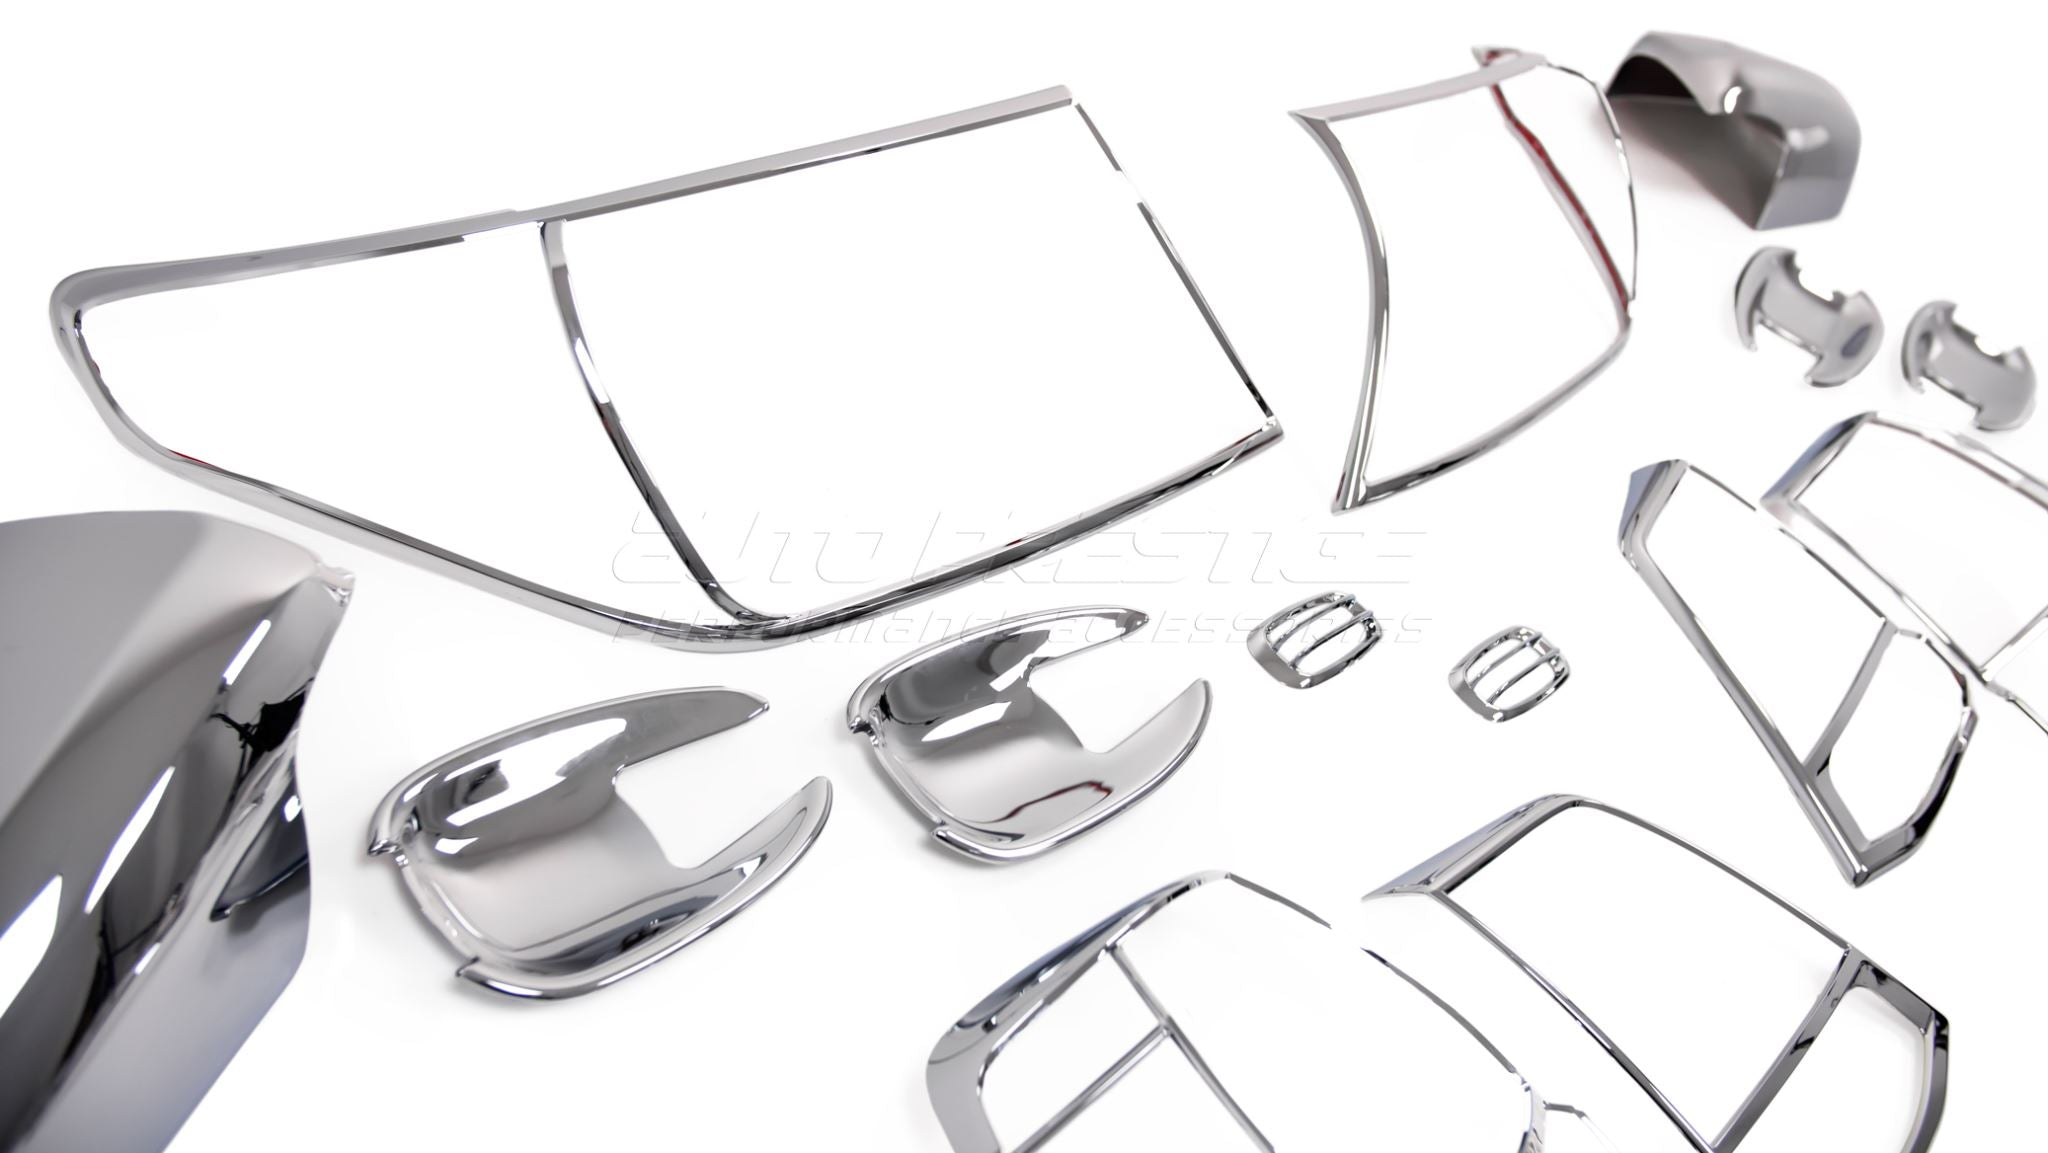 chrome-trims-kit-toyota-land-cruiser-fj-200-series_1_RWQVQUTDOX5P.jpg